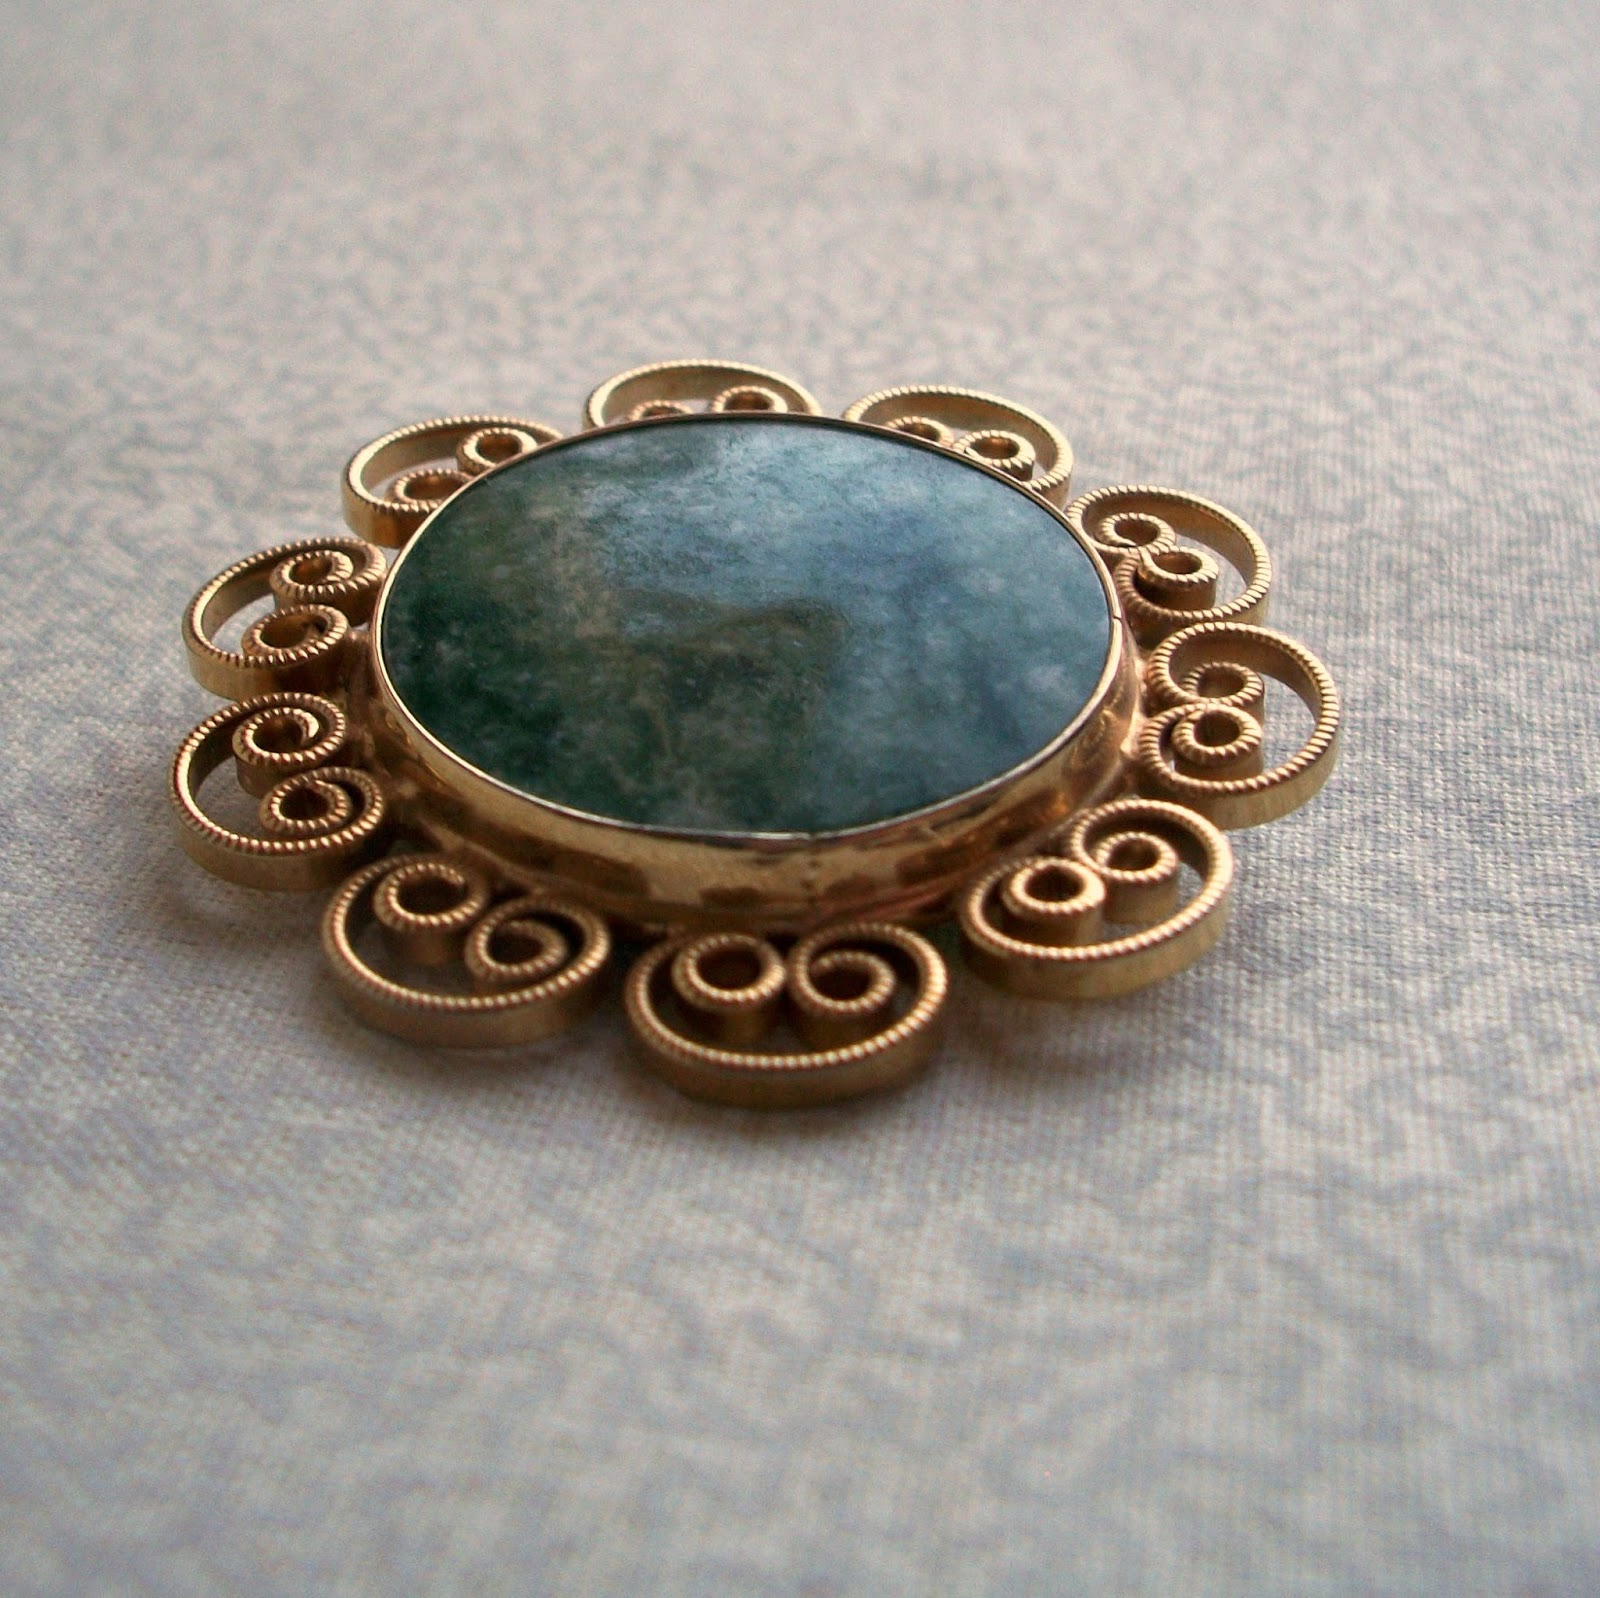 Moss Agate Brooch with Gold Filigree Spirals